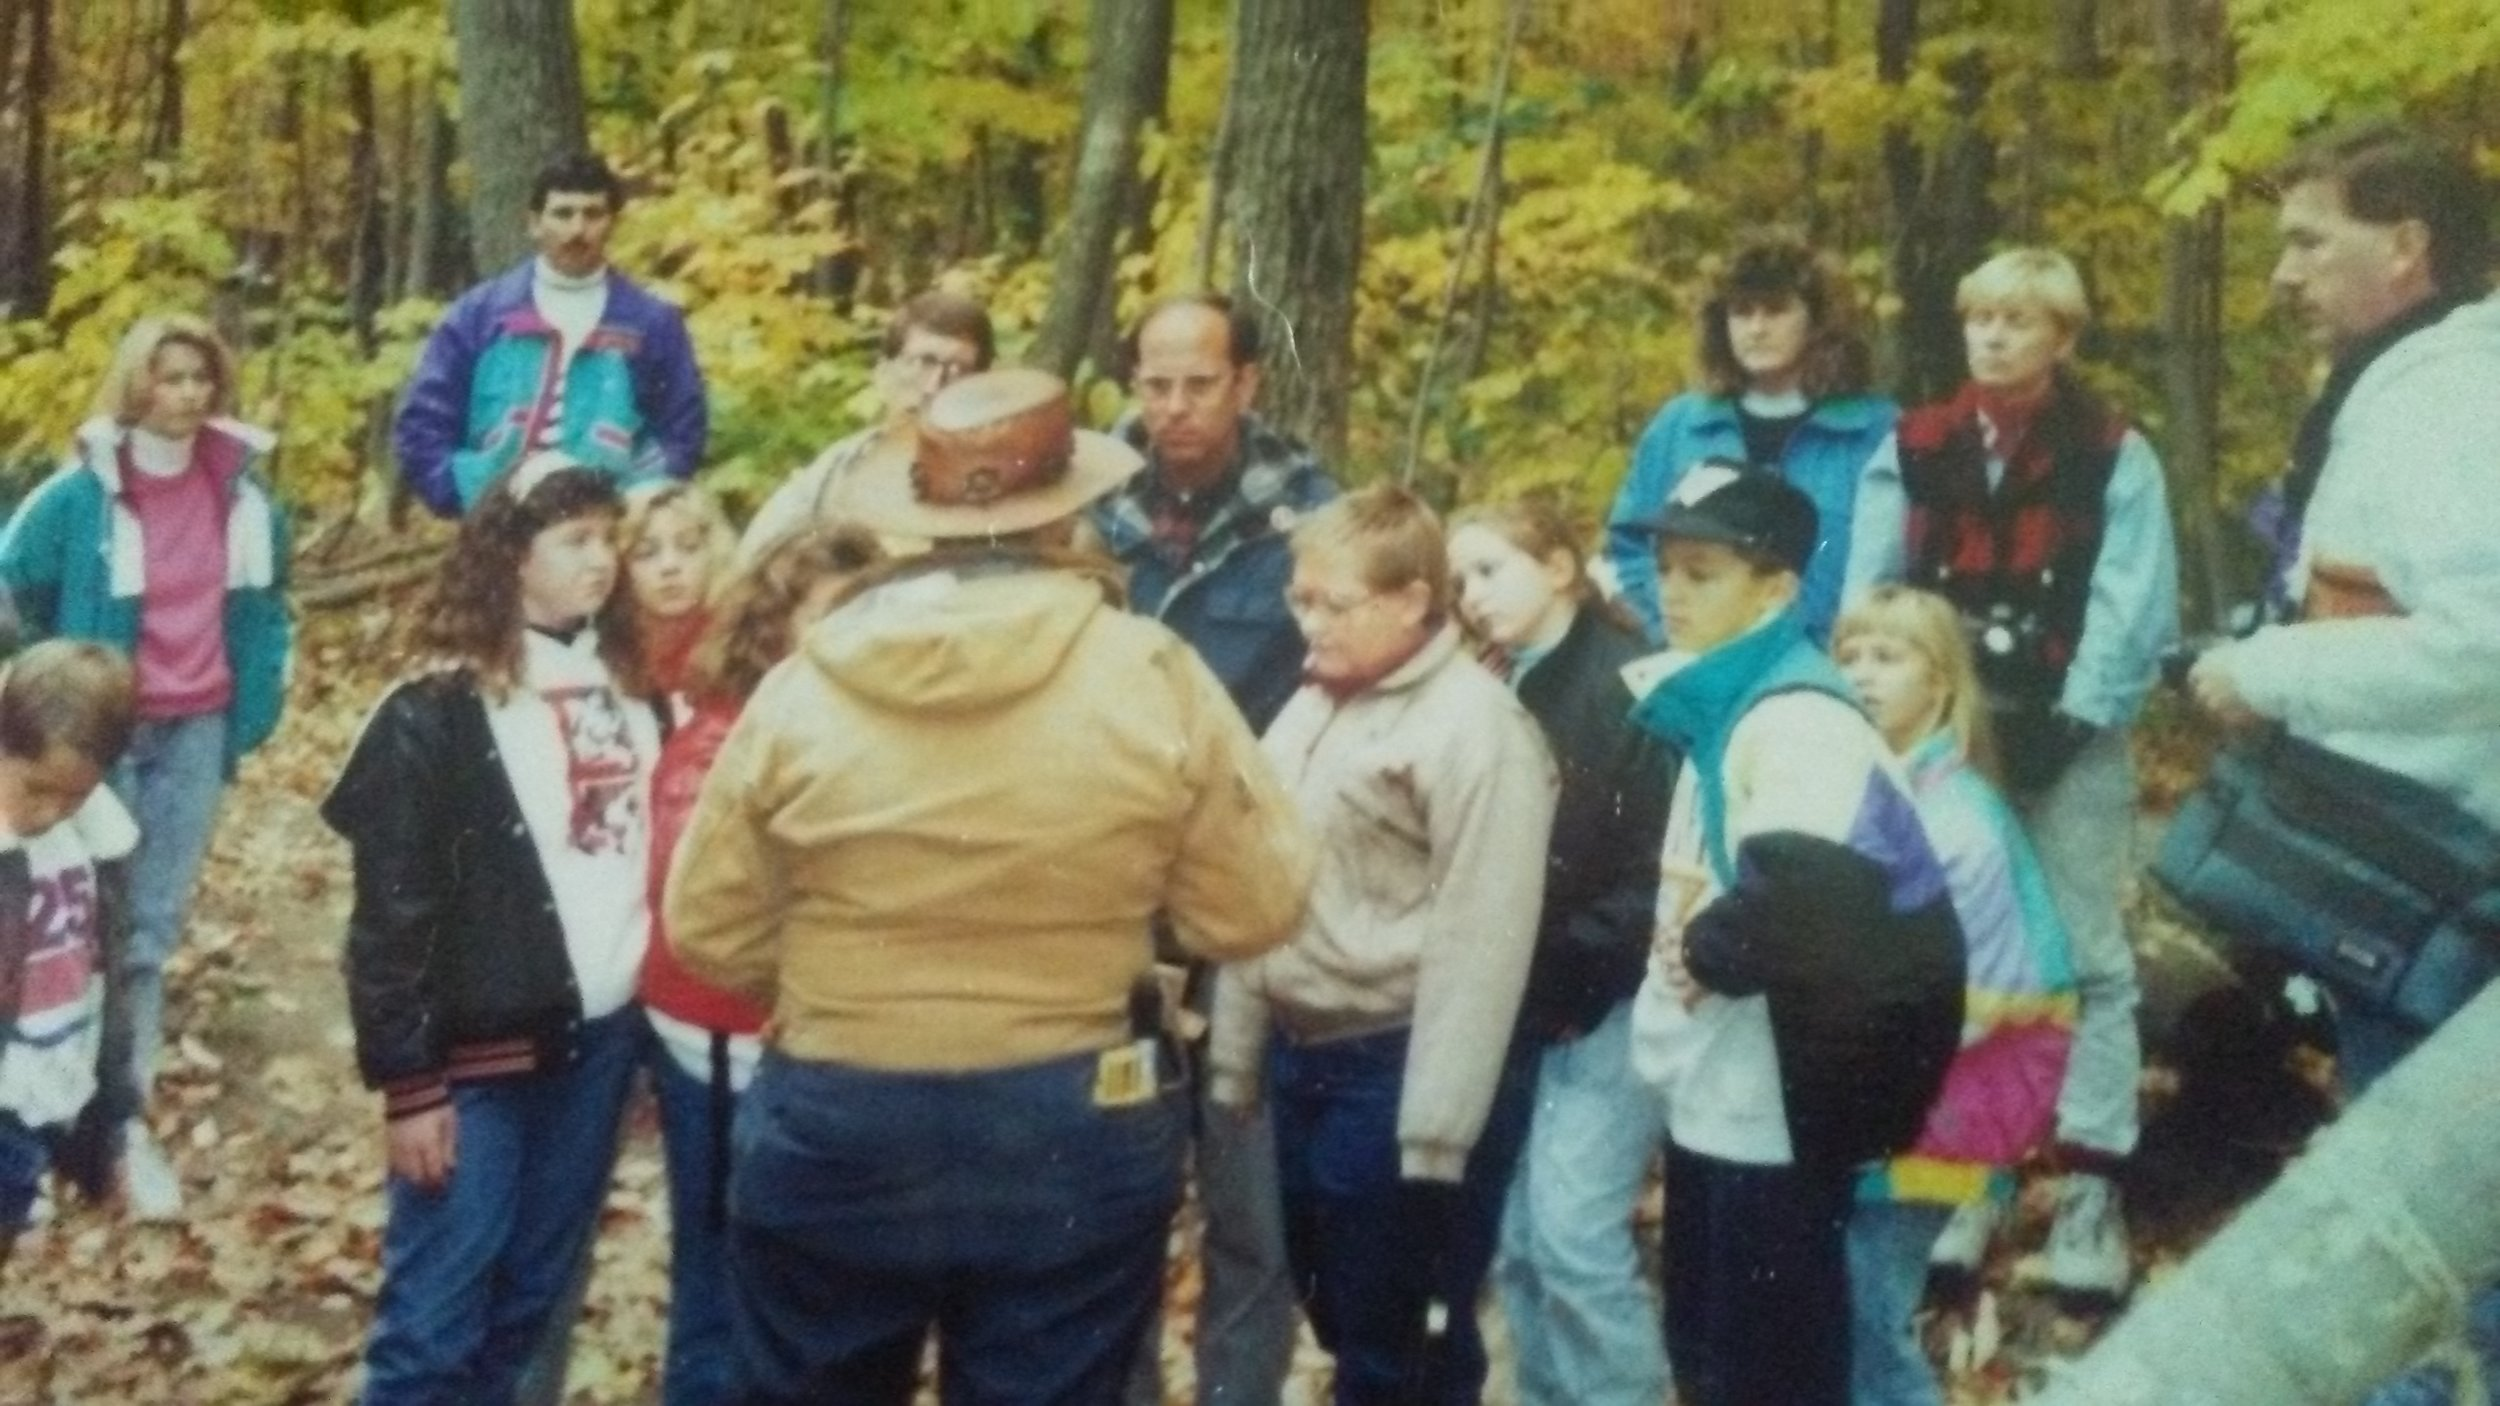 George Demuth and his fabulous hat giving a guided tour of Seaman's Fort circa 1991